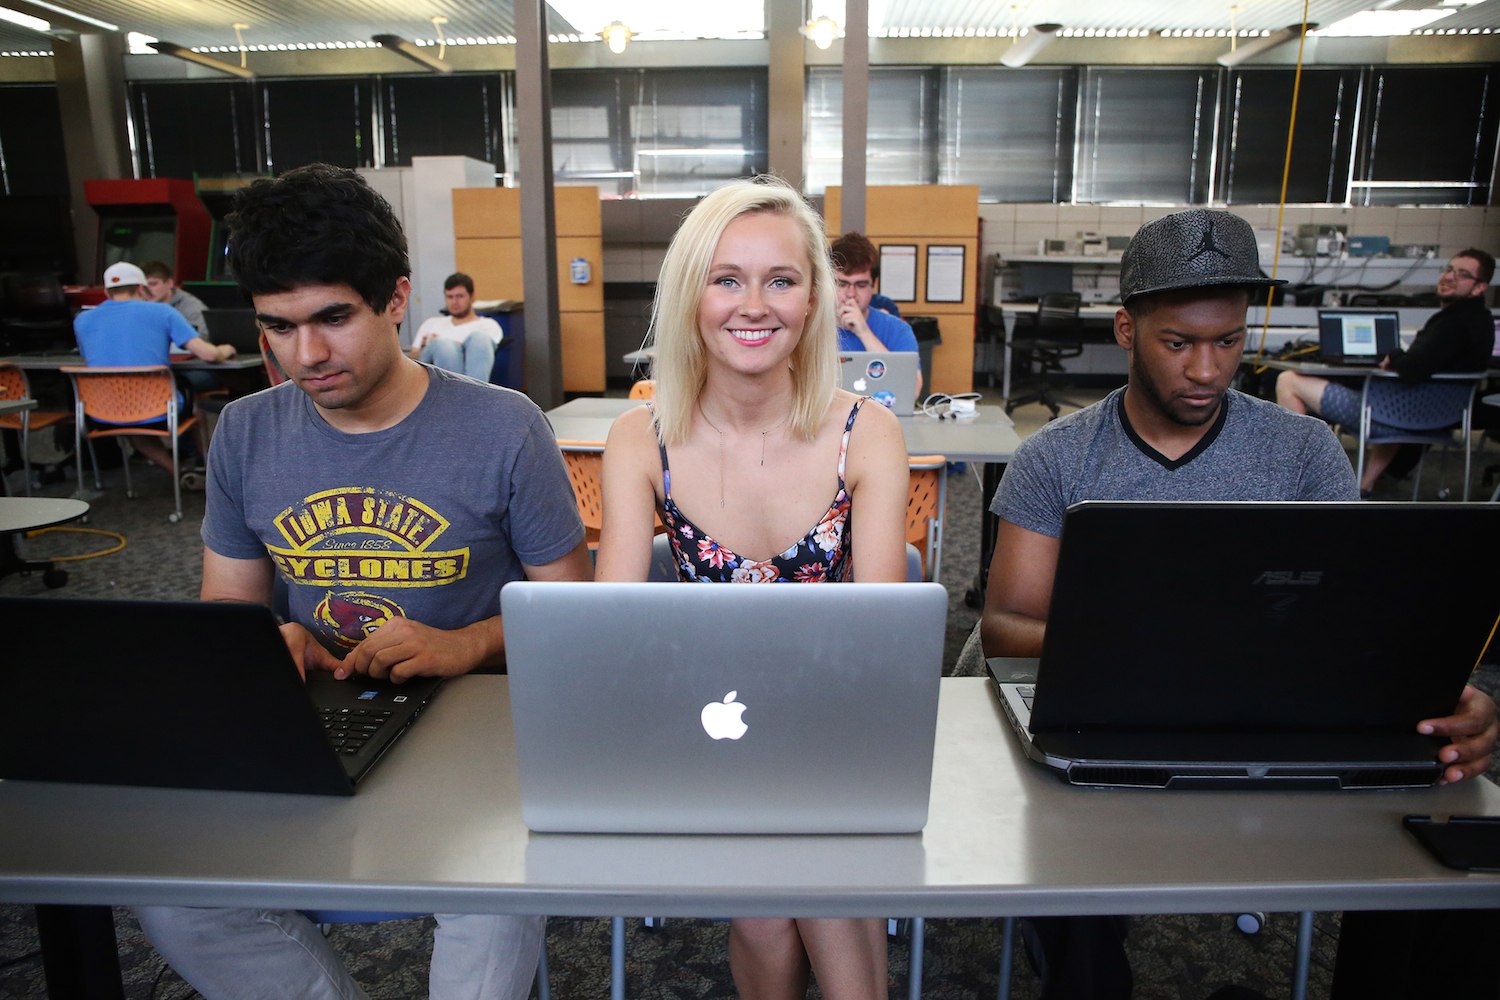 A row of students programming on laptops.